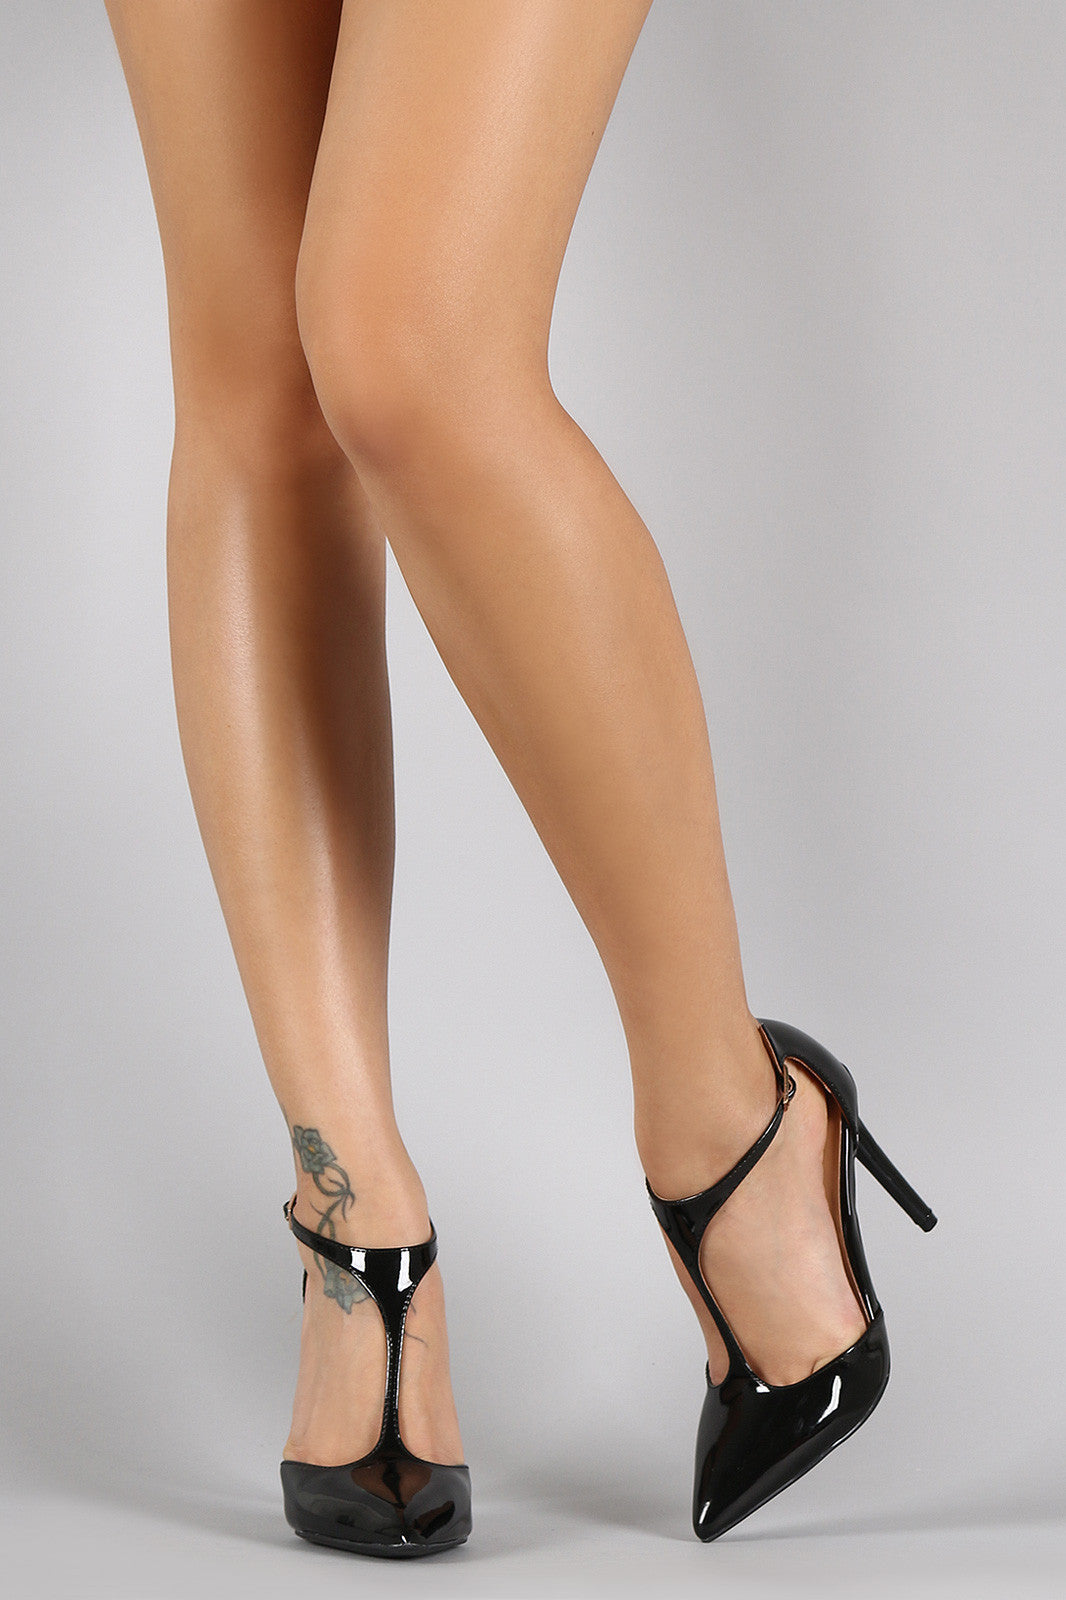 Patent Vegan Leather T-Strap Pointy Toe Pump - Thick 'N' Curvy Shop - 2